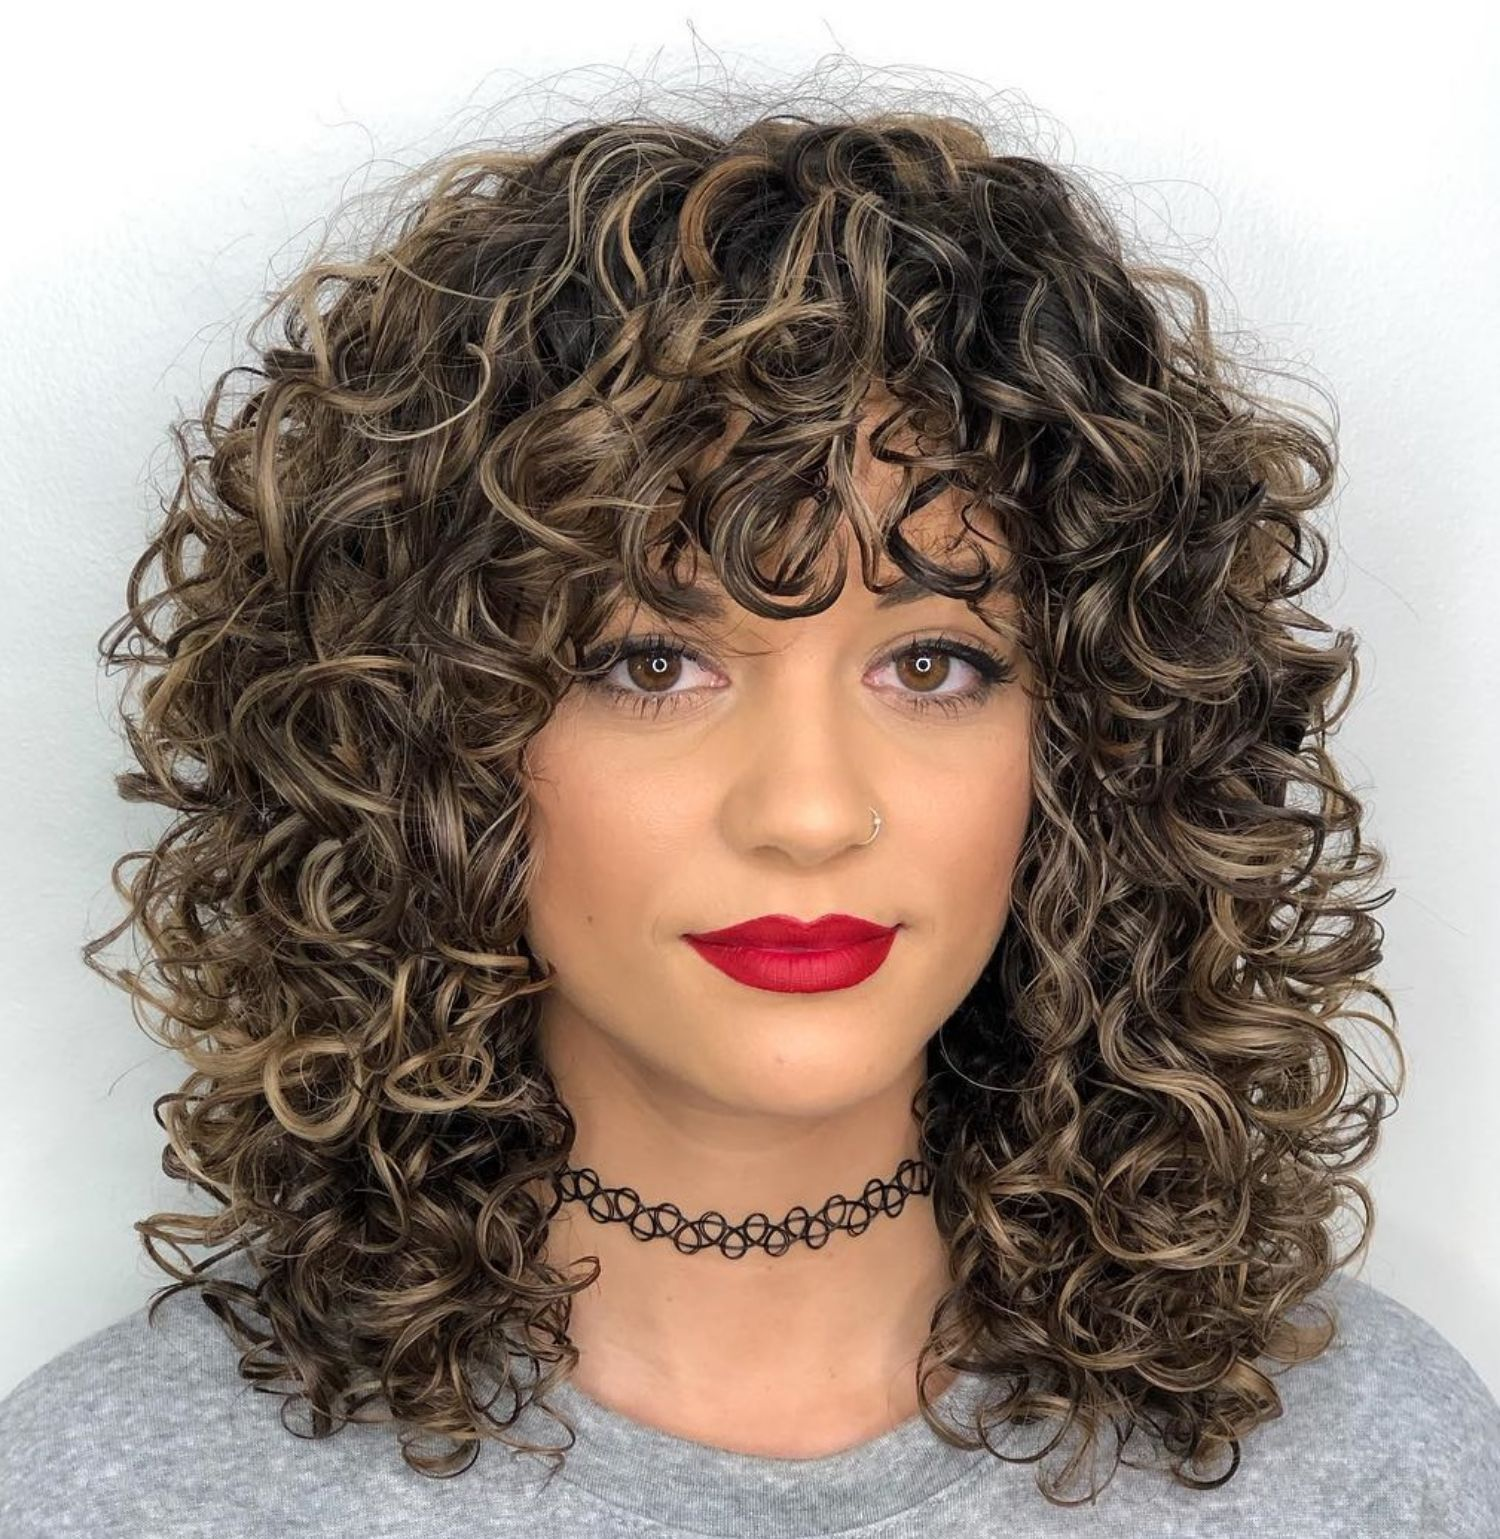 Mid Length Curly Hairstyle With Curly Bangs Medium Curly Hair Styles Mid Length Curly Hairstyles Curly Hair Styles Naturally